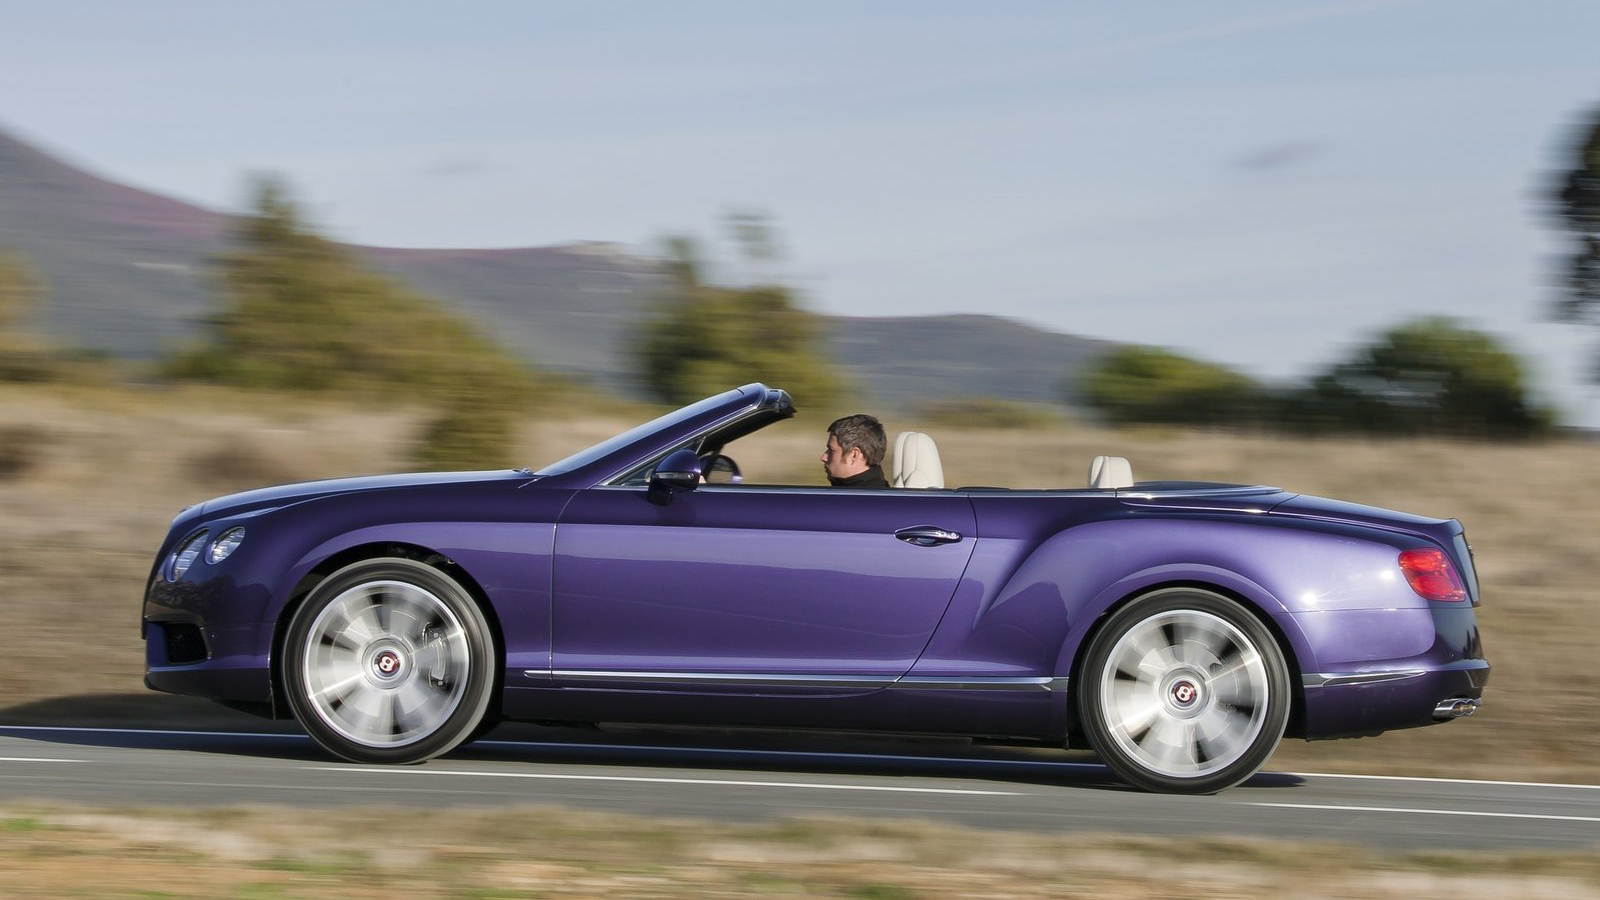 car wallpapers free download  2013 bentley continental gtc 4 0 v8 twin turbo 507 cv 67 3 mkgf